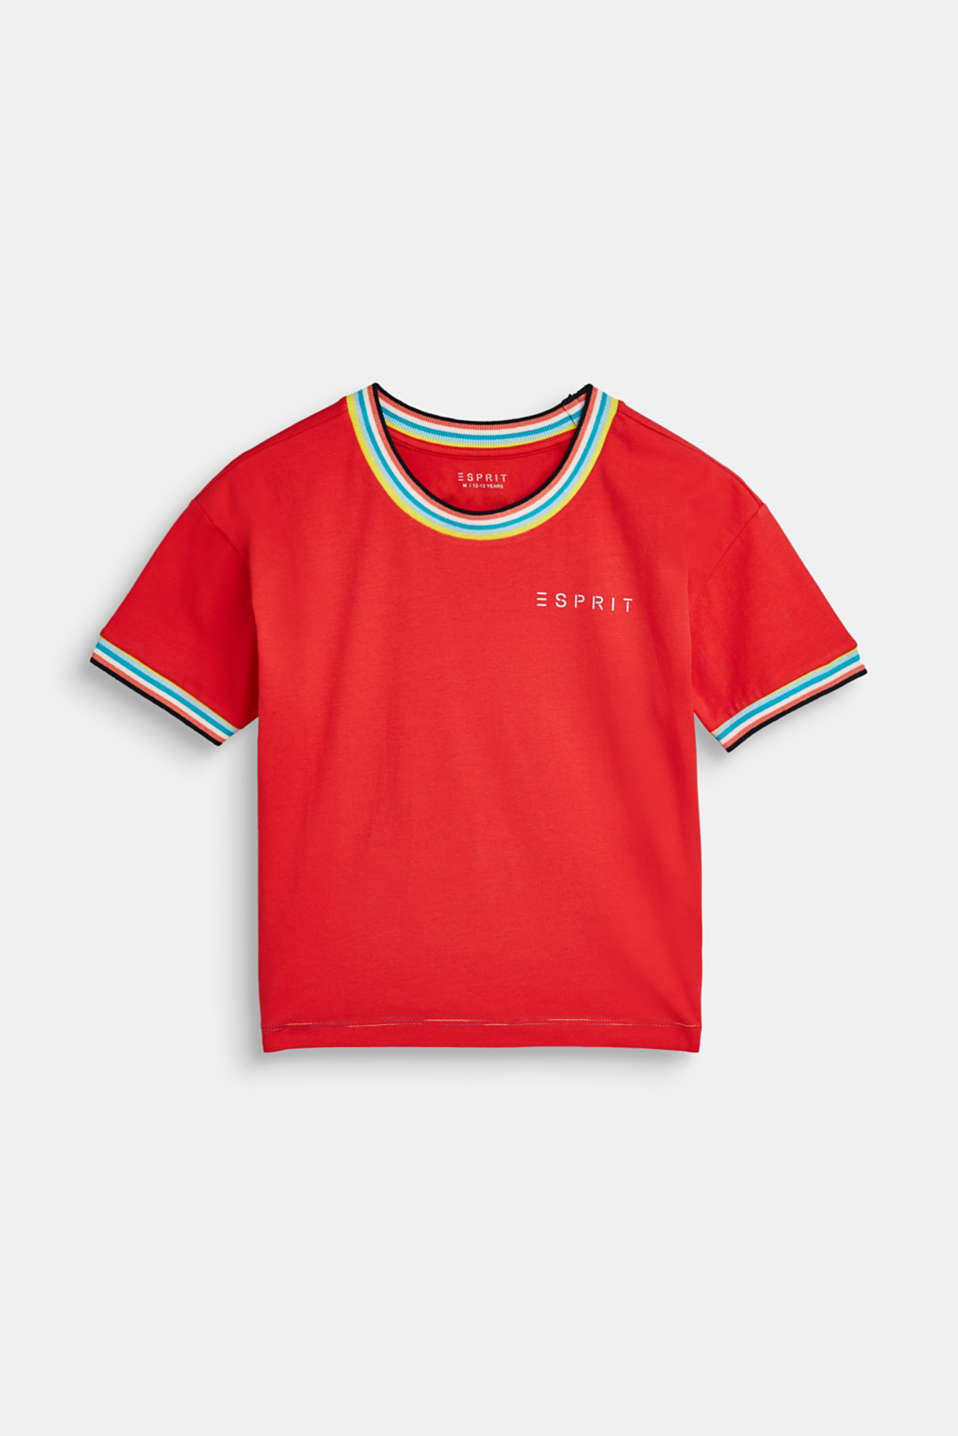 Esprit - T-shirt with colourful ribbed cuffs